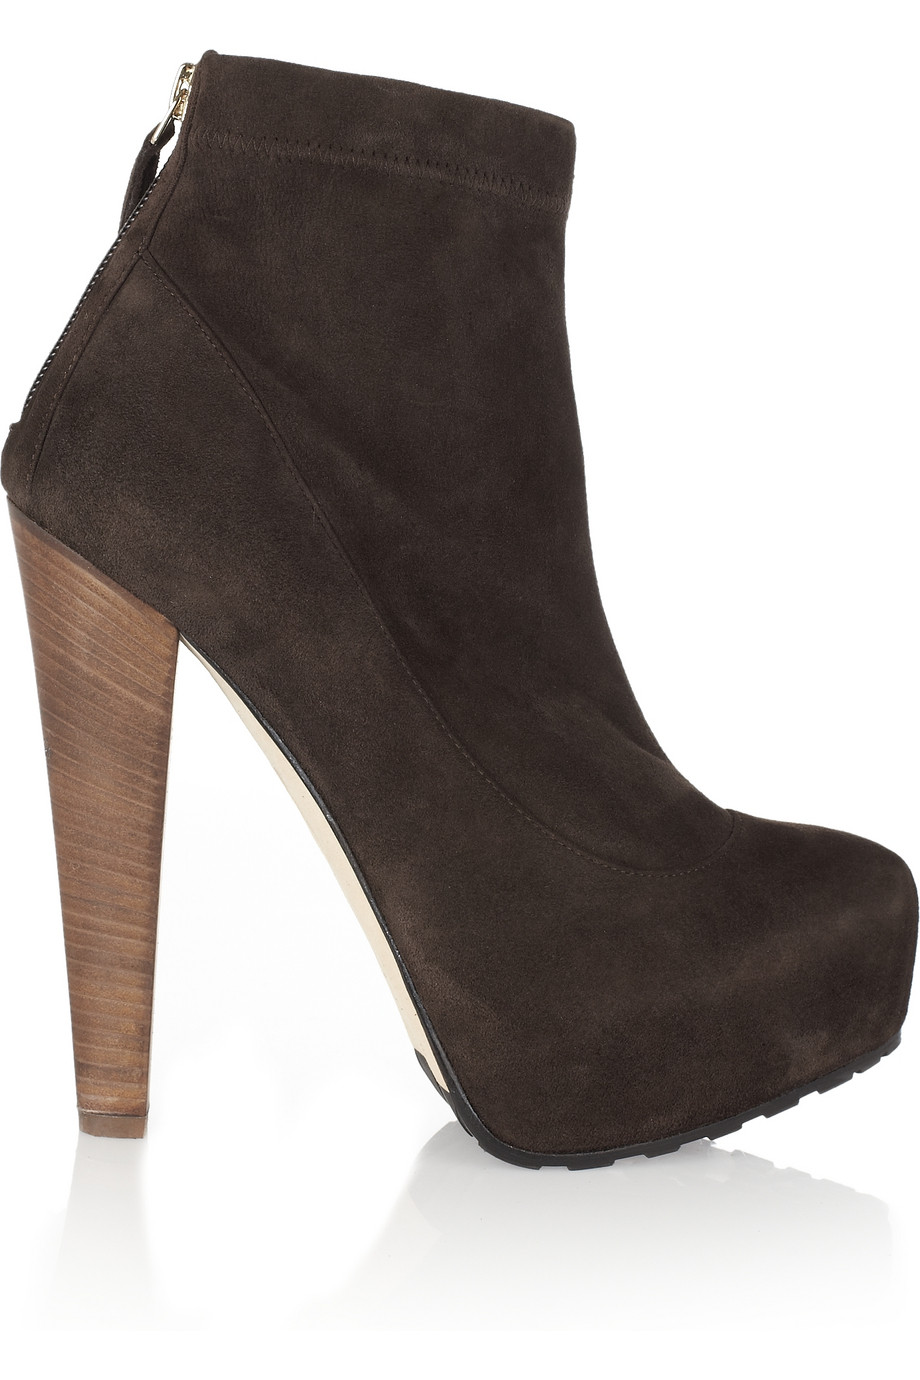 brian atwood ami suede platform ankle boots in brown lyst